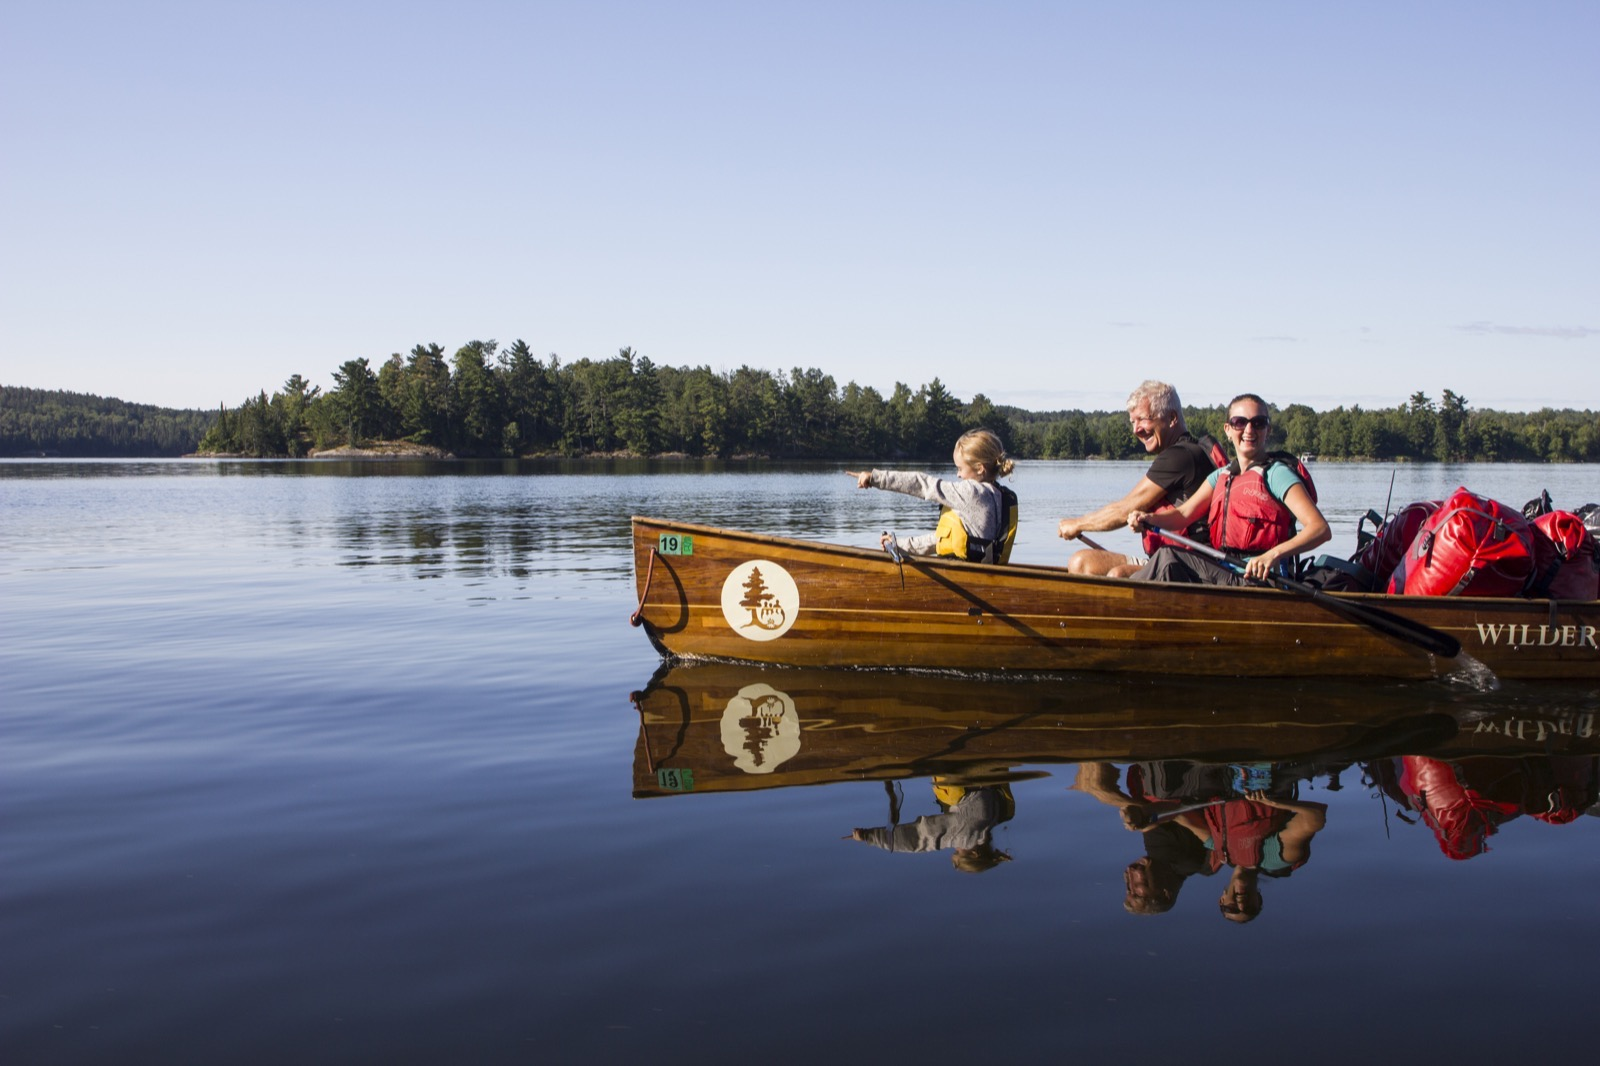 While paddling away from their campsite, a family group in a Voyageur canoe poses for a photo with water and pine trees in the background.